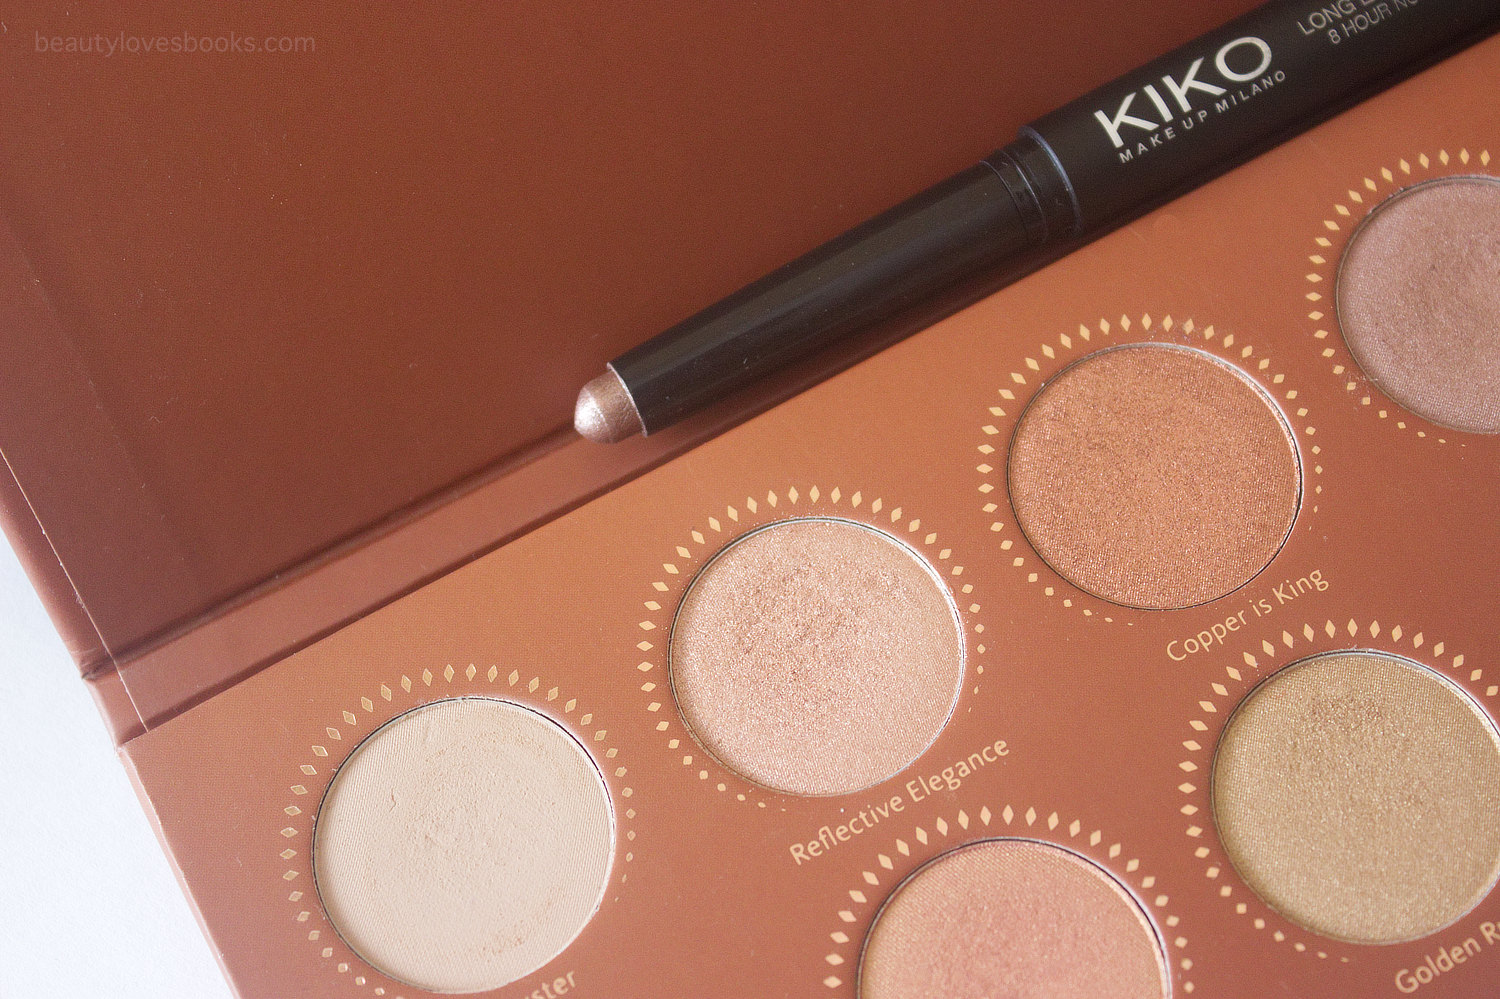 KIKO Long Lasting Stick in 05 Rosy Brown and Zoeva Rose Golden palette